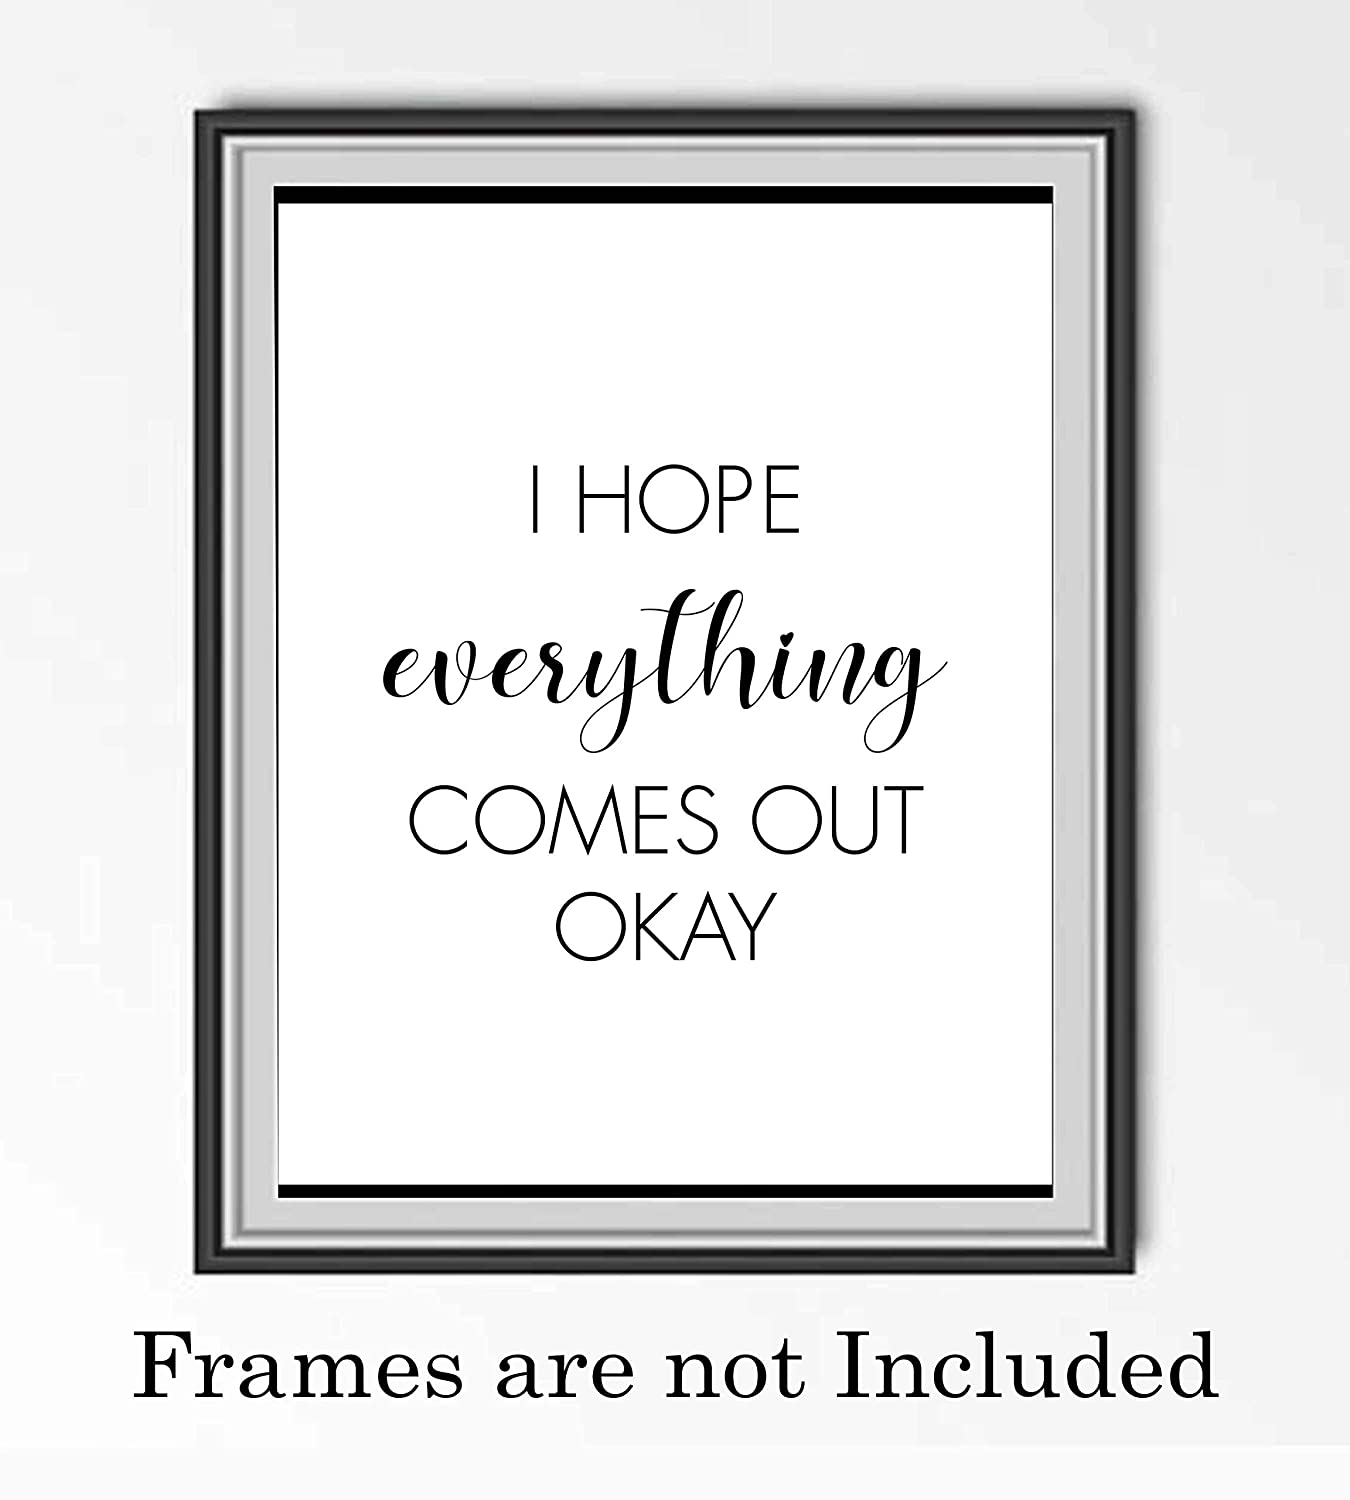 """""""I Hope Everything Comes Out Okay""""-Funny Bathroom Sign- 8 x 10"""" Modern Typographic Wall Art Print-Ready to Frame. Perfect Humorous Home Decor for Guest Bathroom! Great Novelty Housewarming Gift!"""